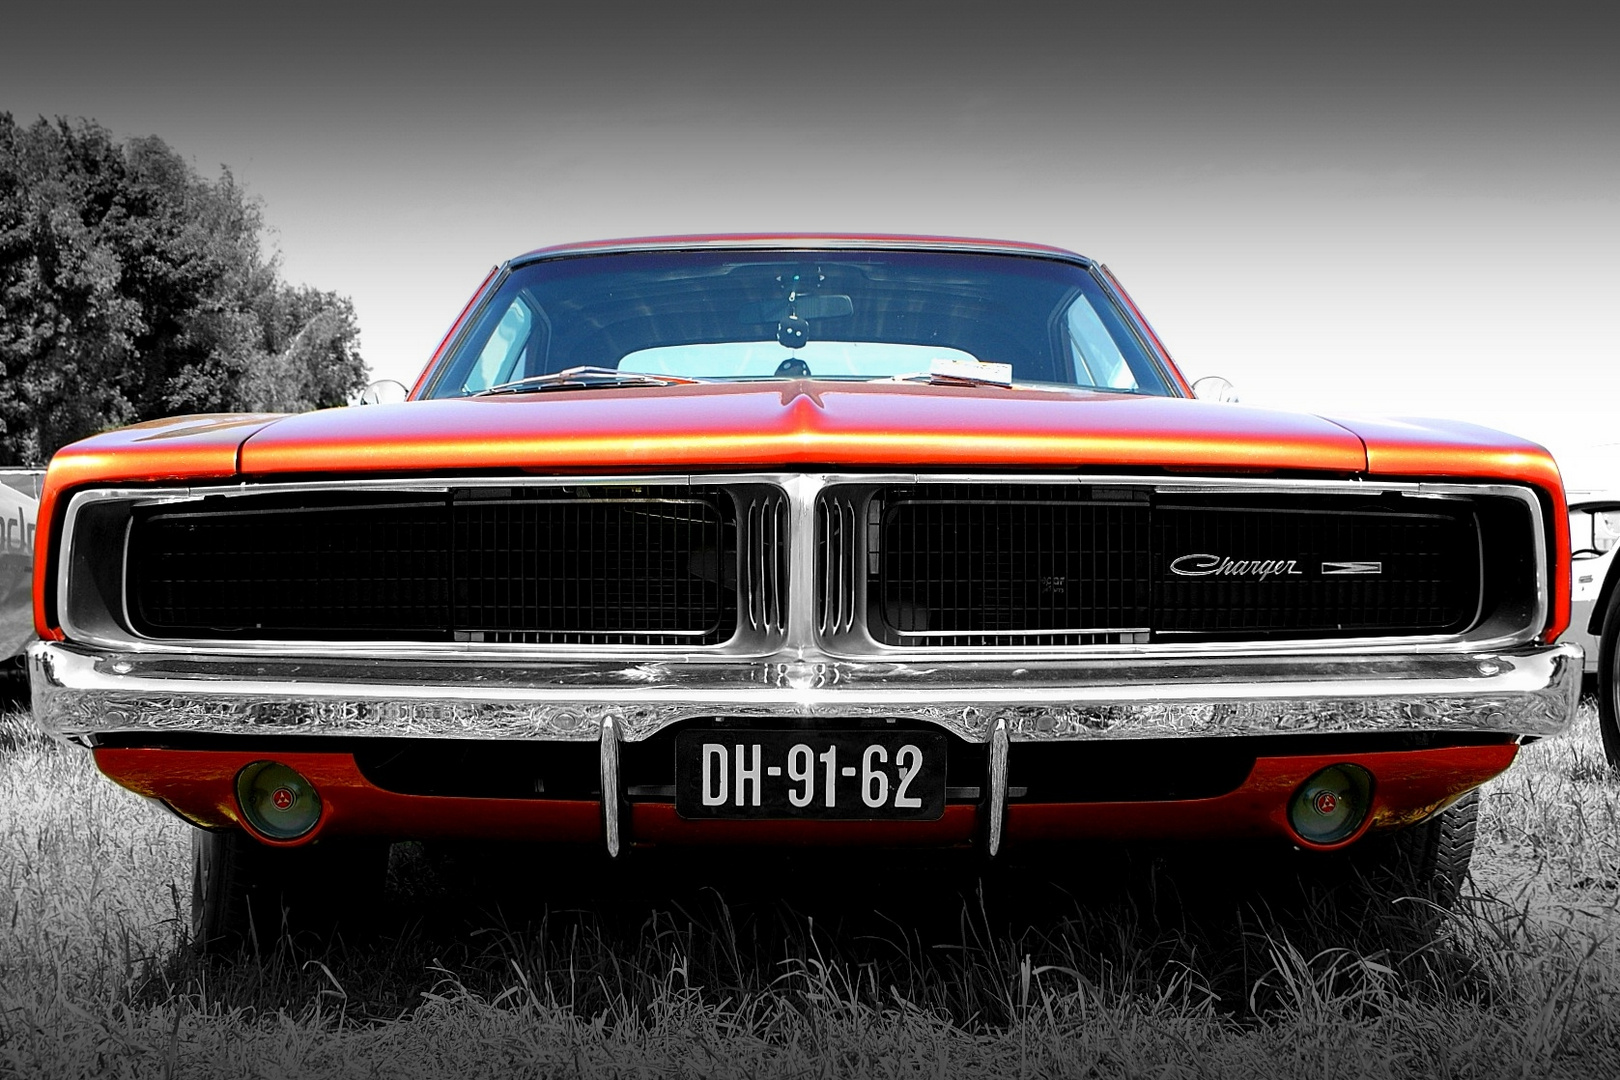 '69 Charger